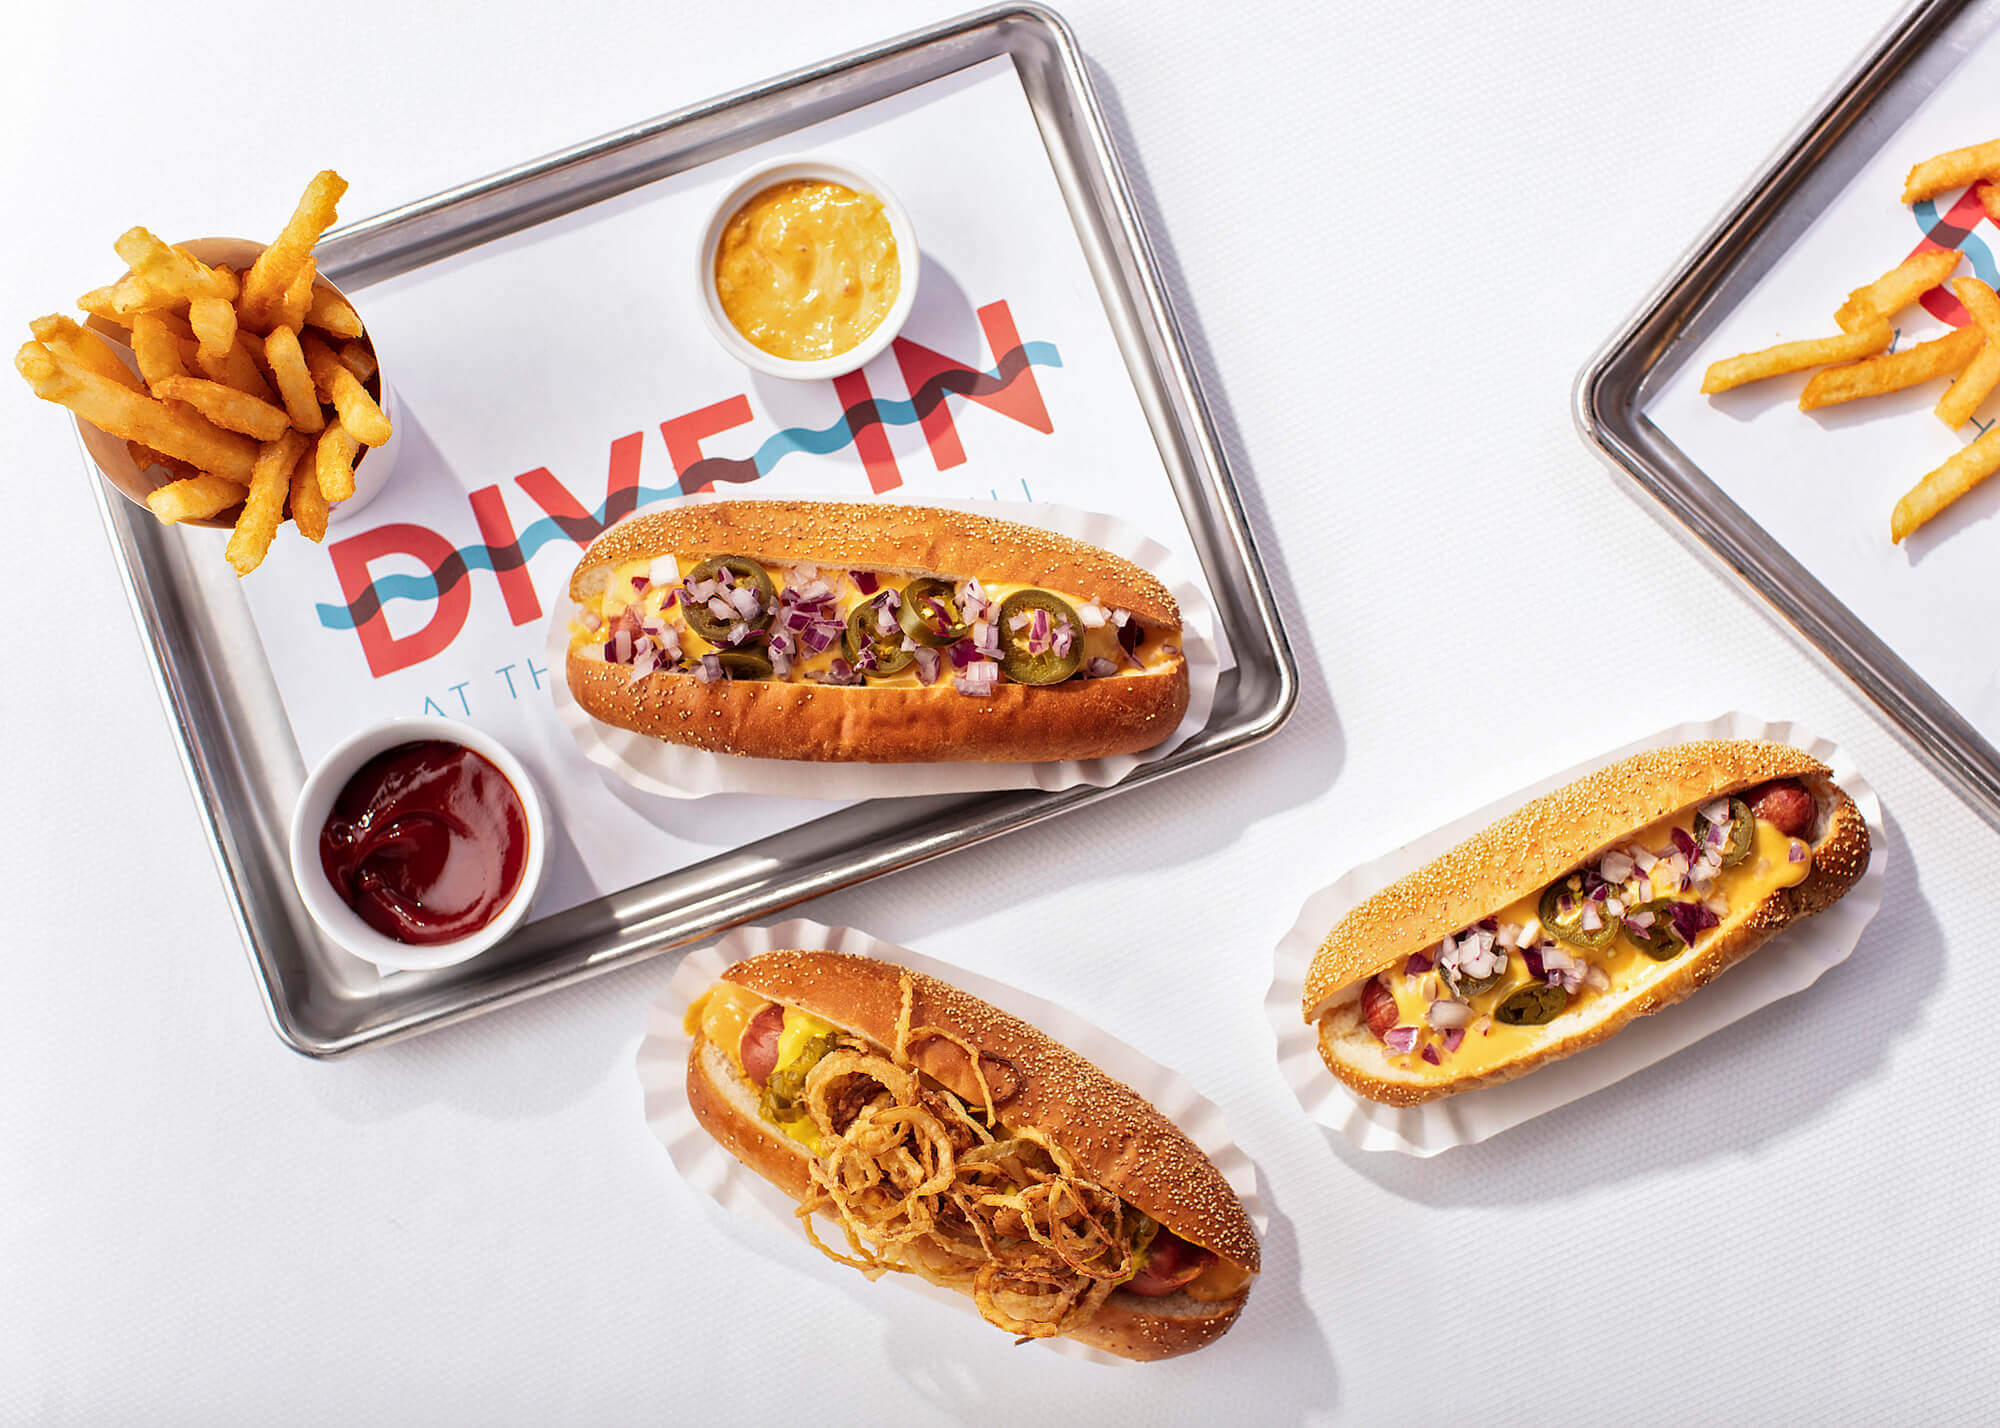 Tray of hot dogs and french fries